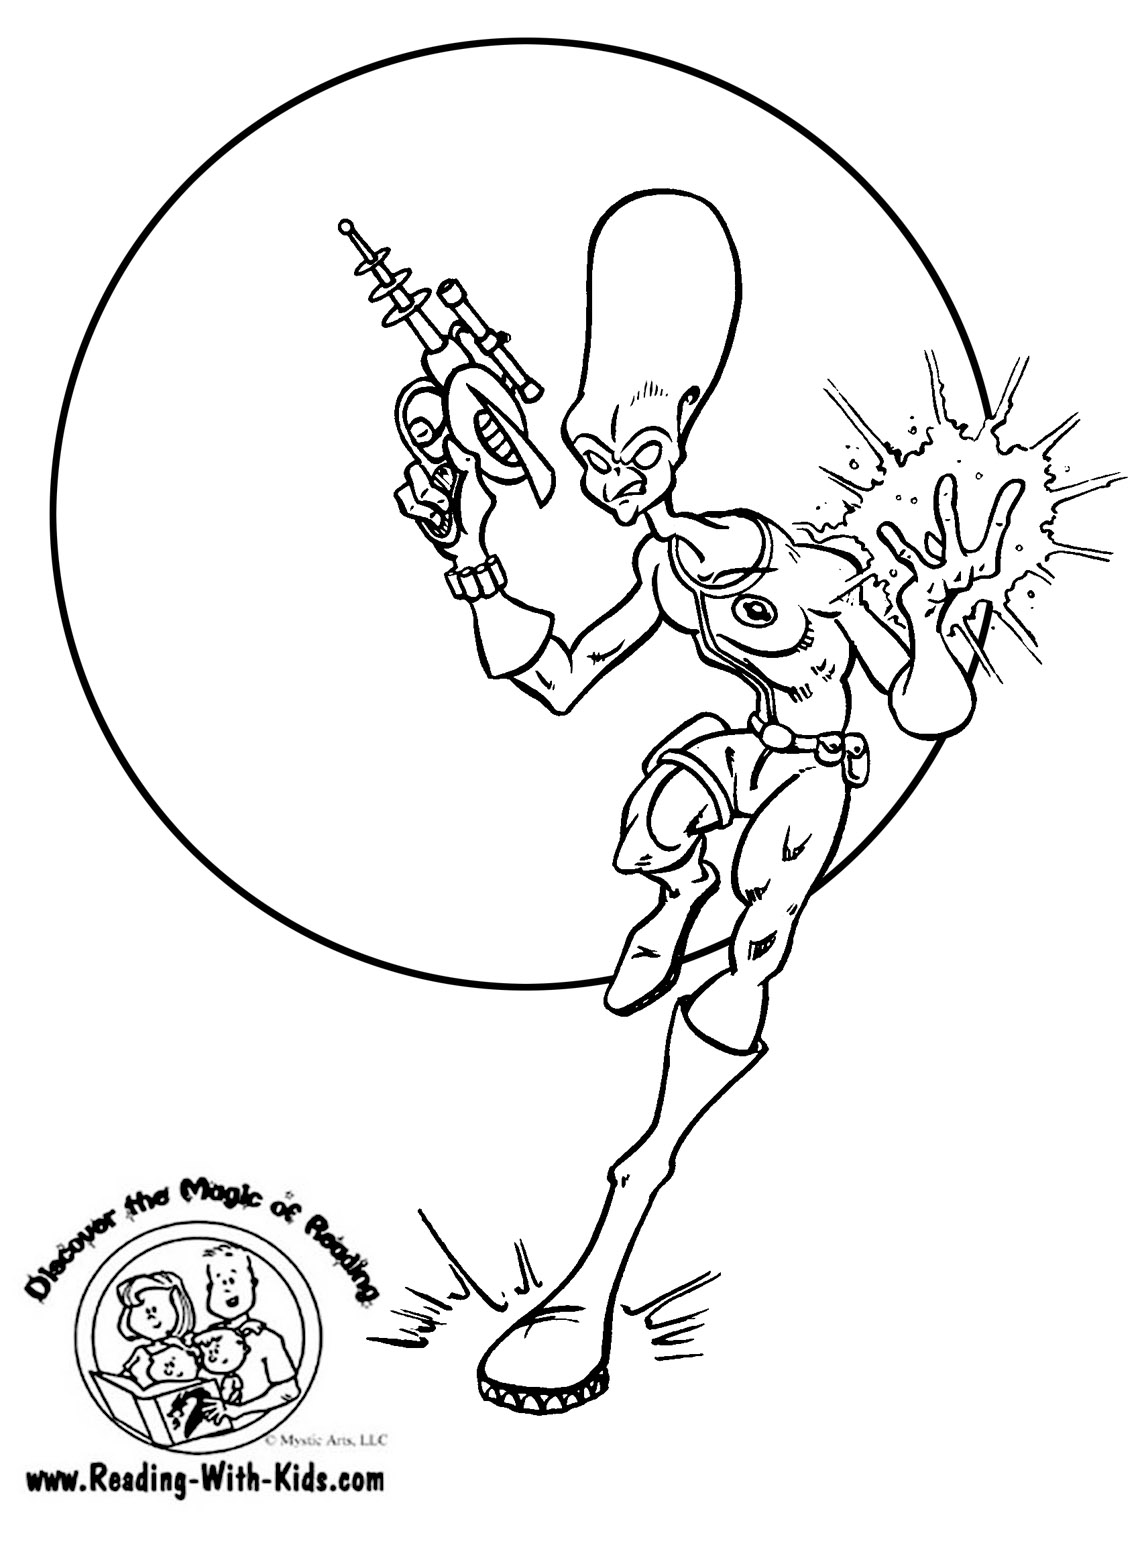 Book reading coloring page -  Space Alien Coloring Page